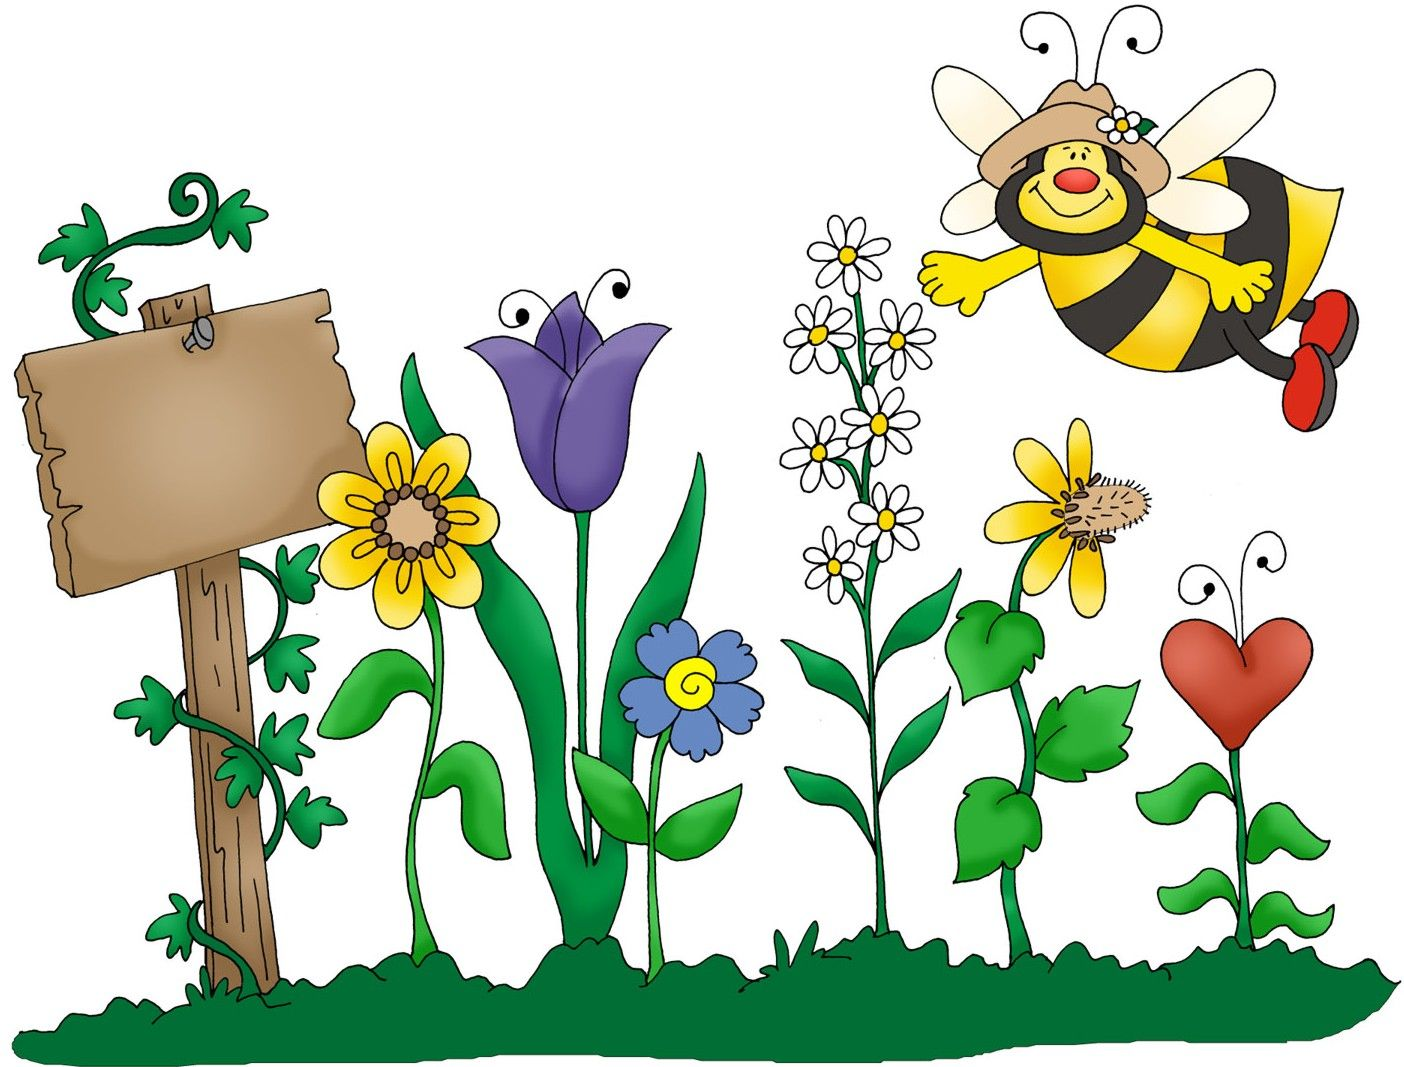 Gardening clipart free clipart images - Clipartix